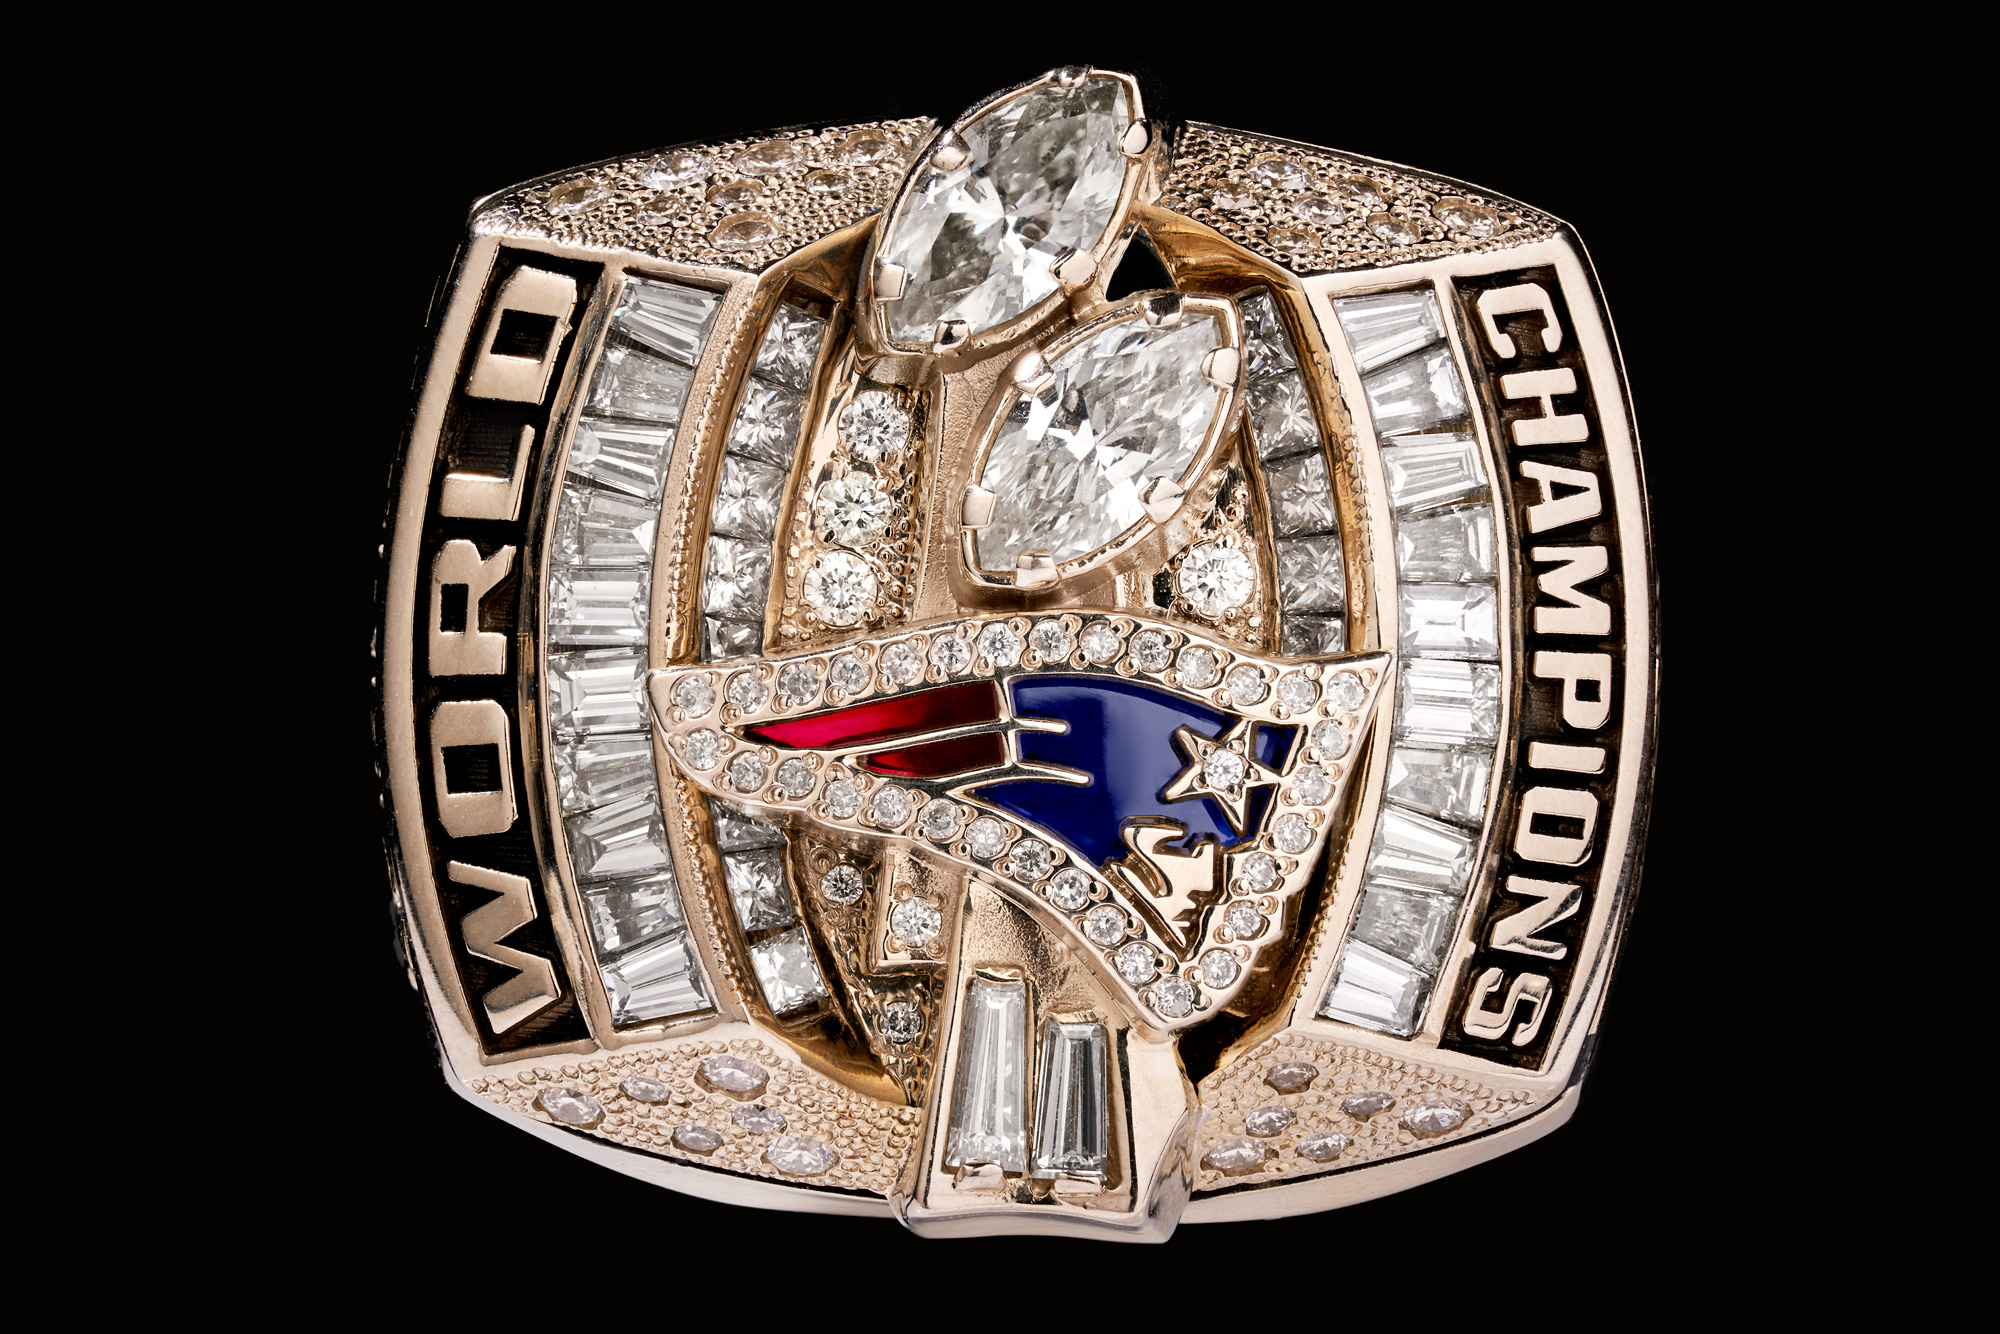 Product-Photograph-of-Super-Bowl-Rings-by-Architectural,-Interior,-and-Product-Photographer-Nick-McGinn-2.web.jpg